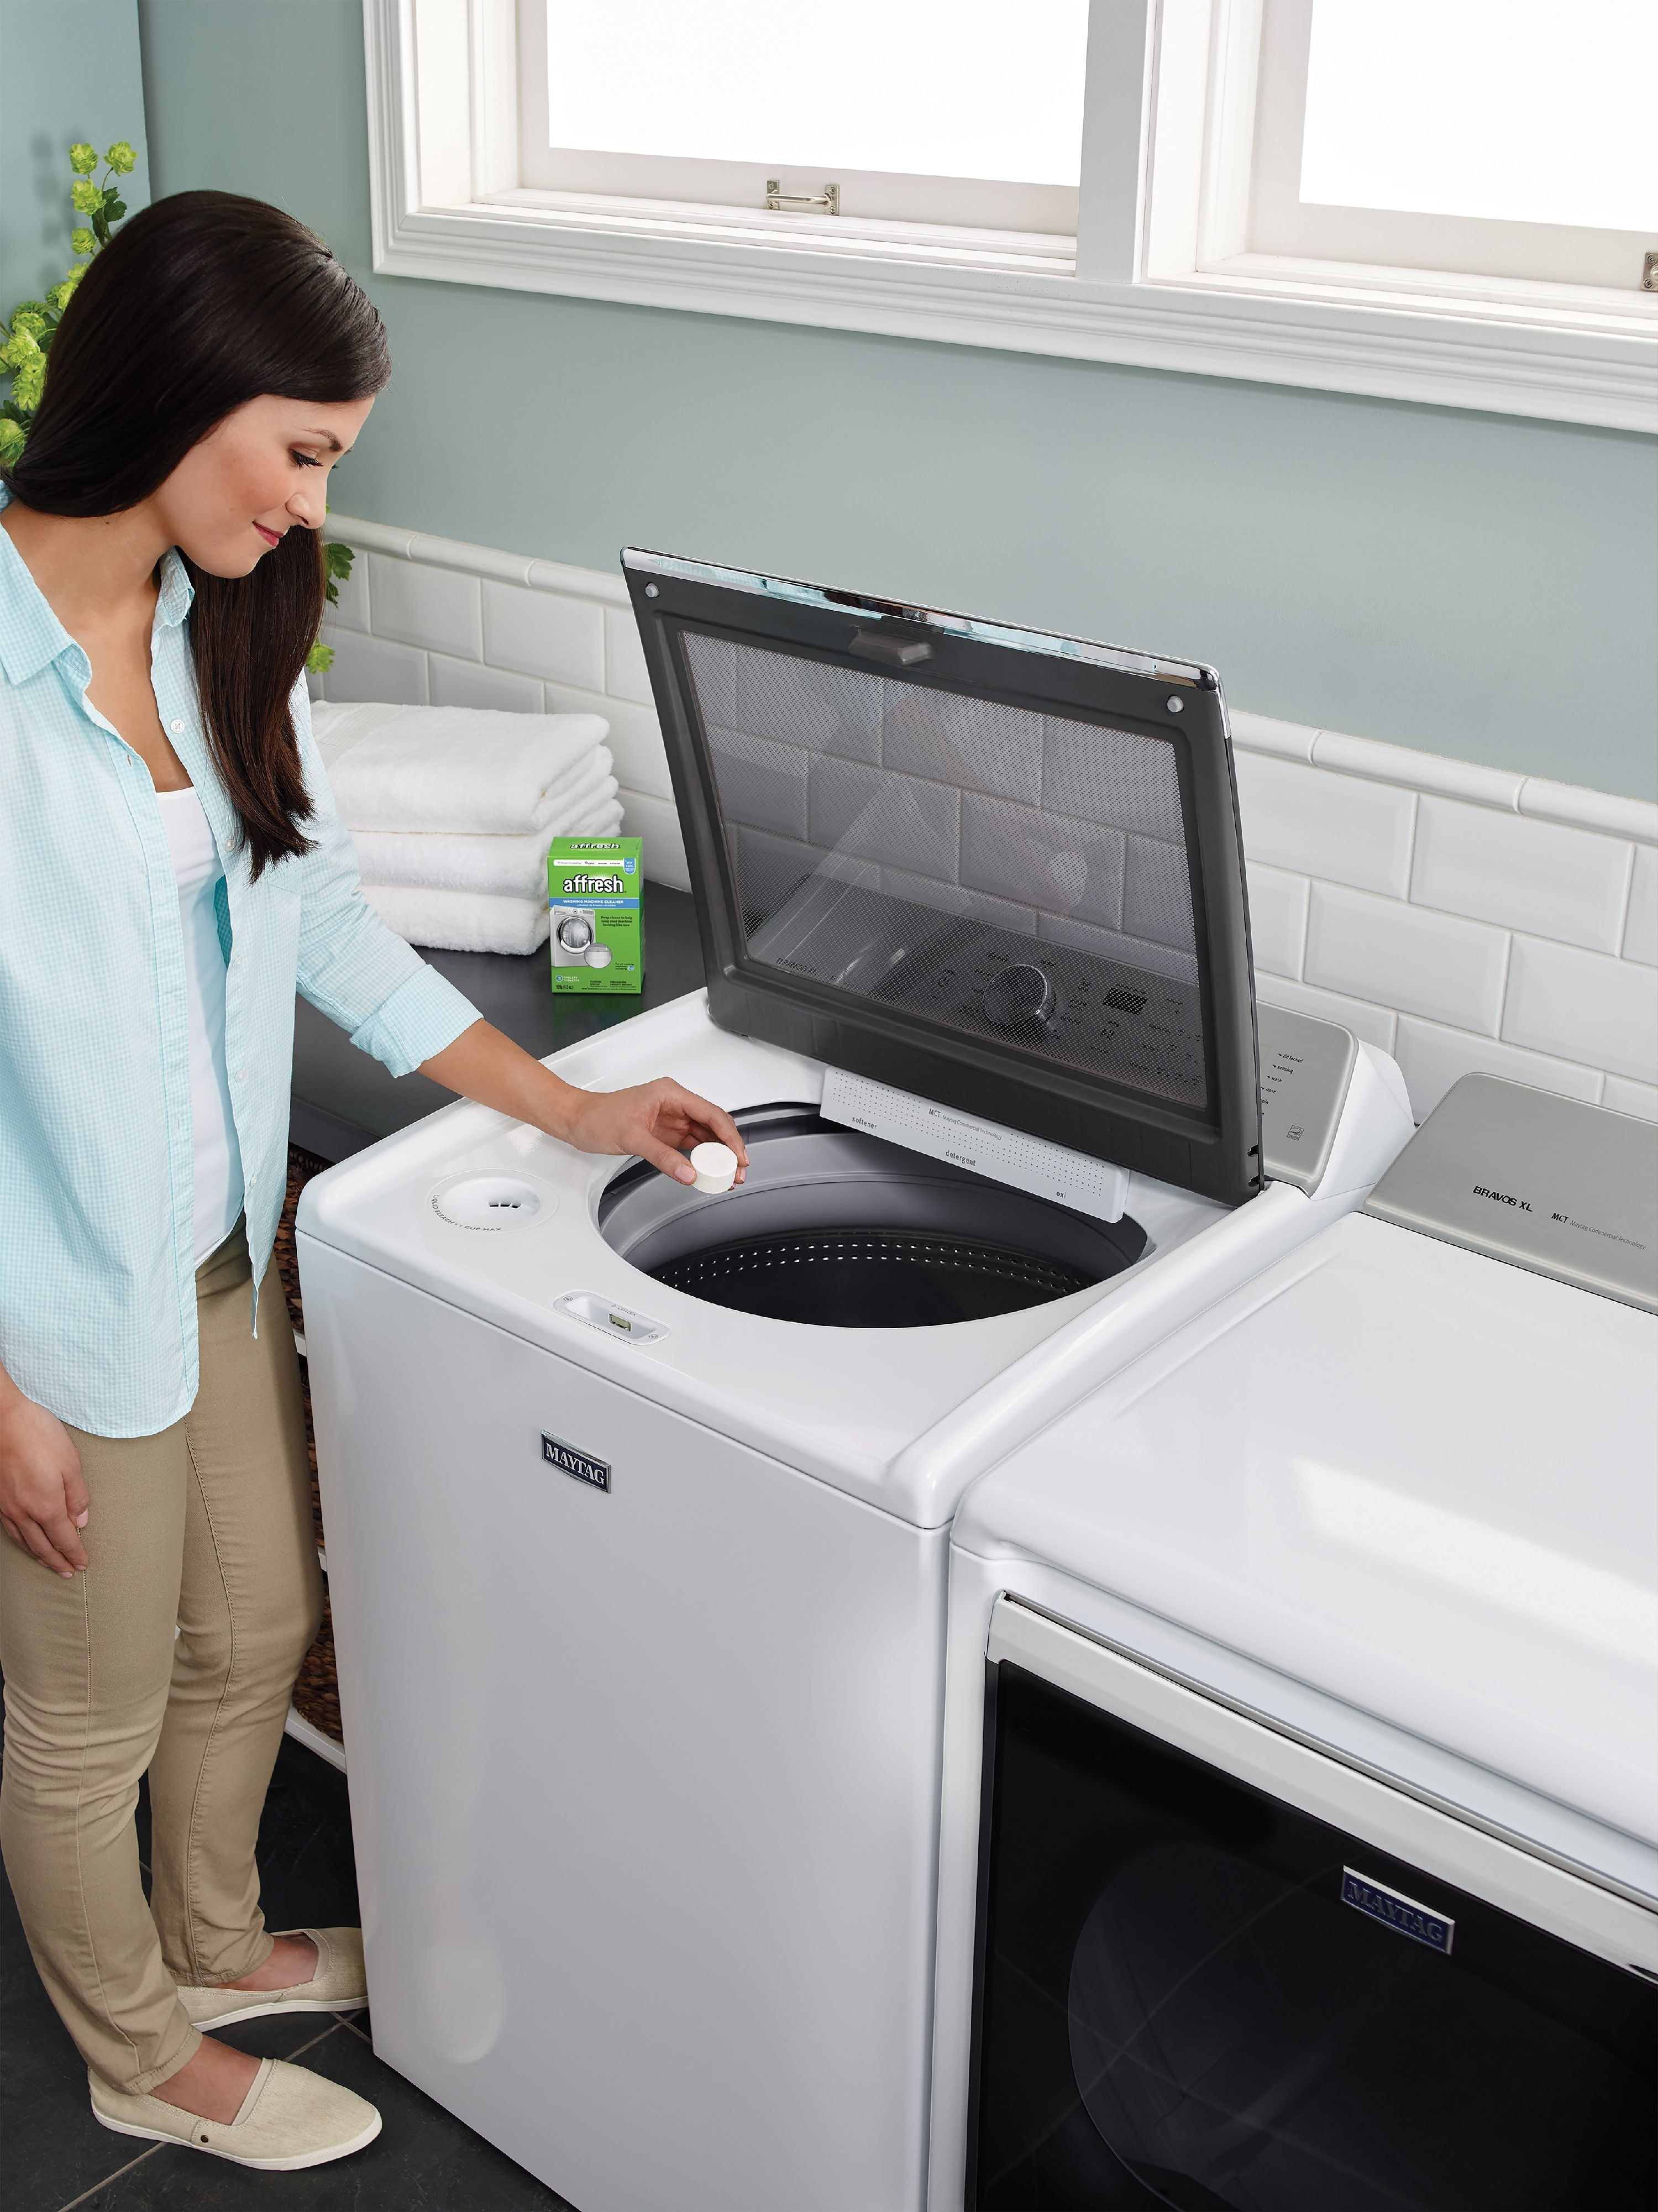 A model placing an Affresh tablet in the washing machine